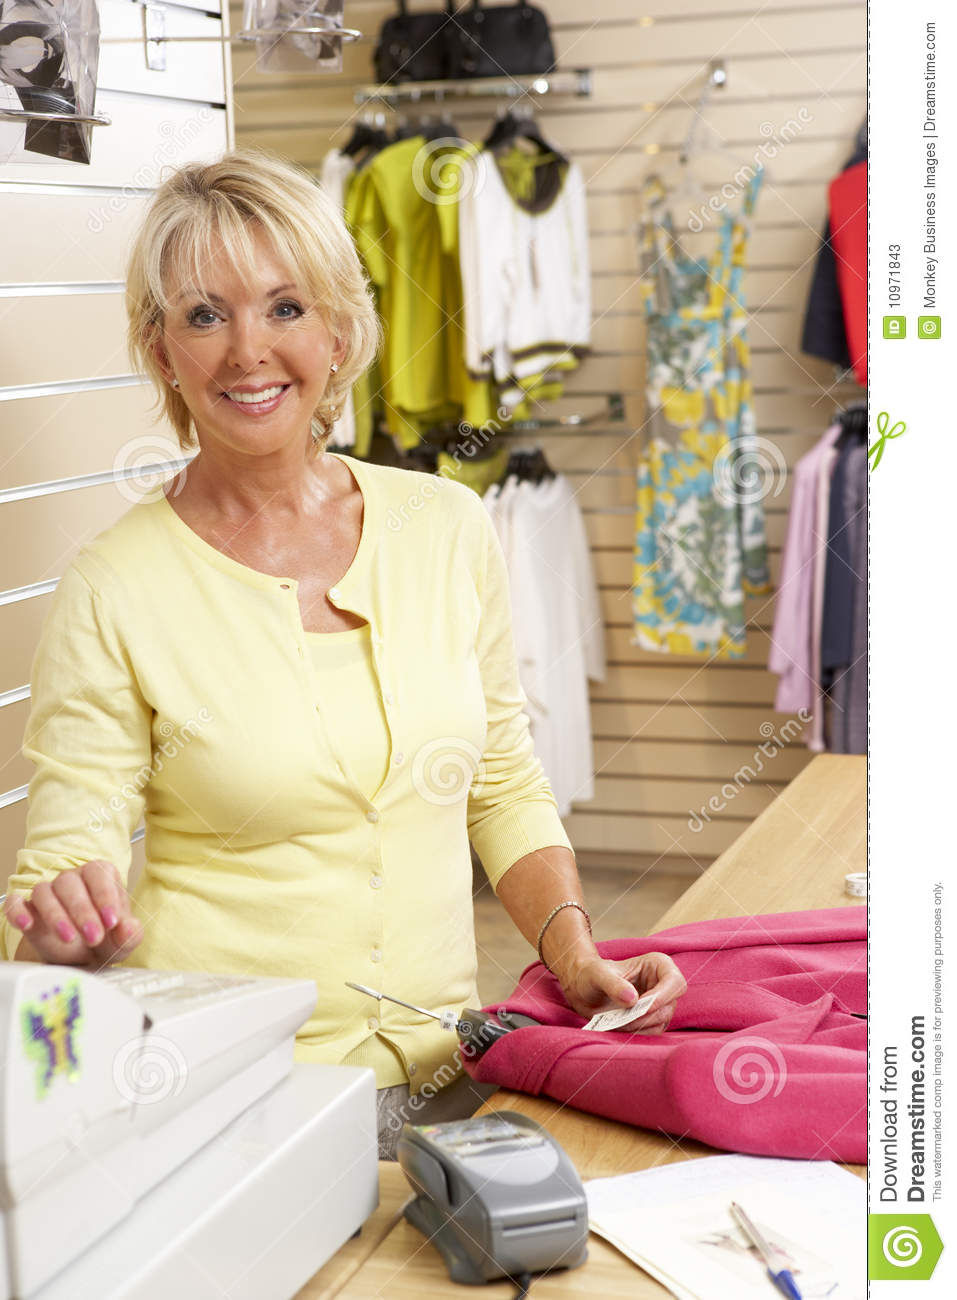 Clothing stores online Clearance stores online clothing